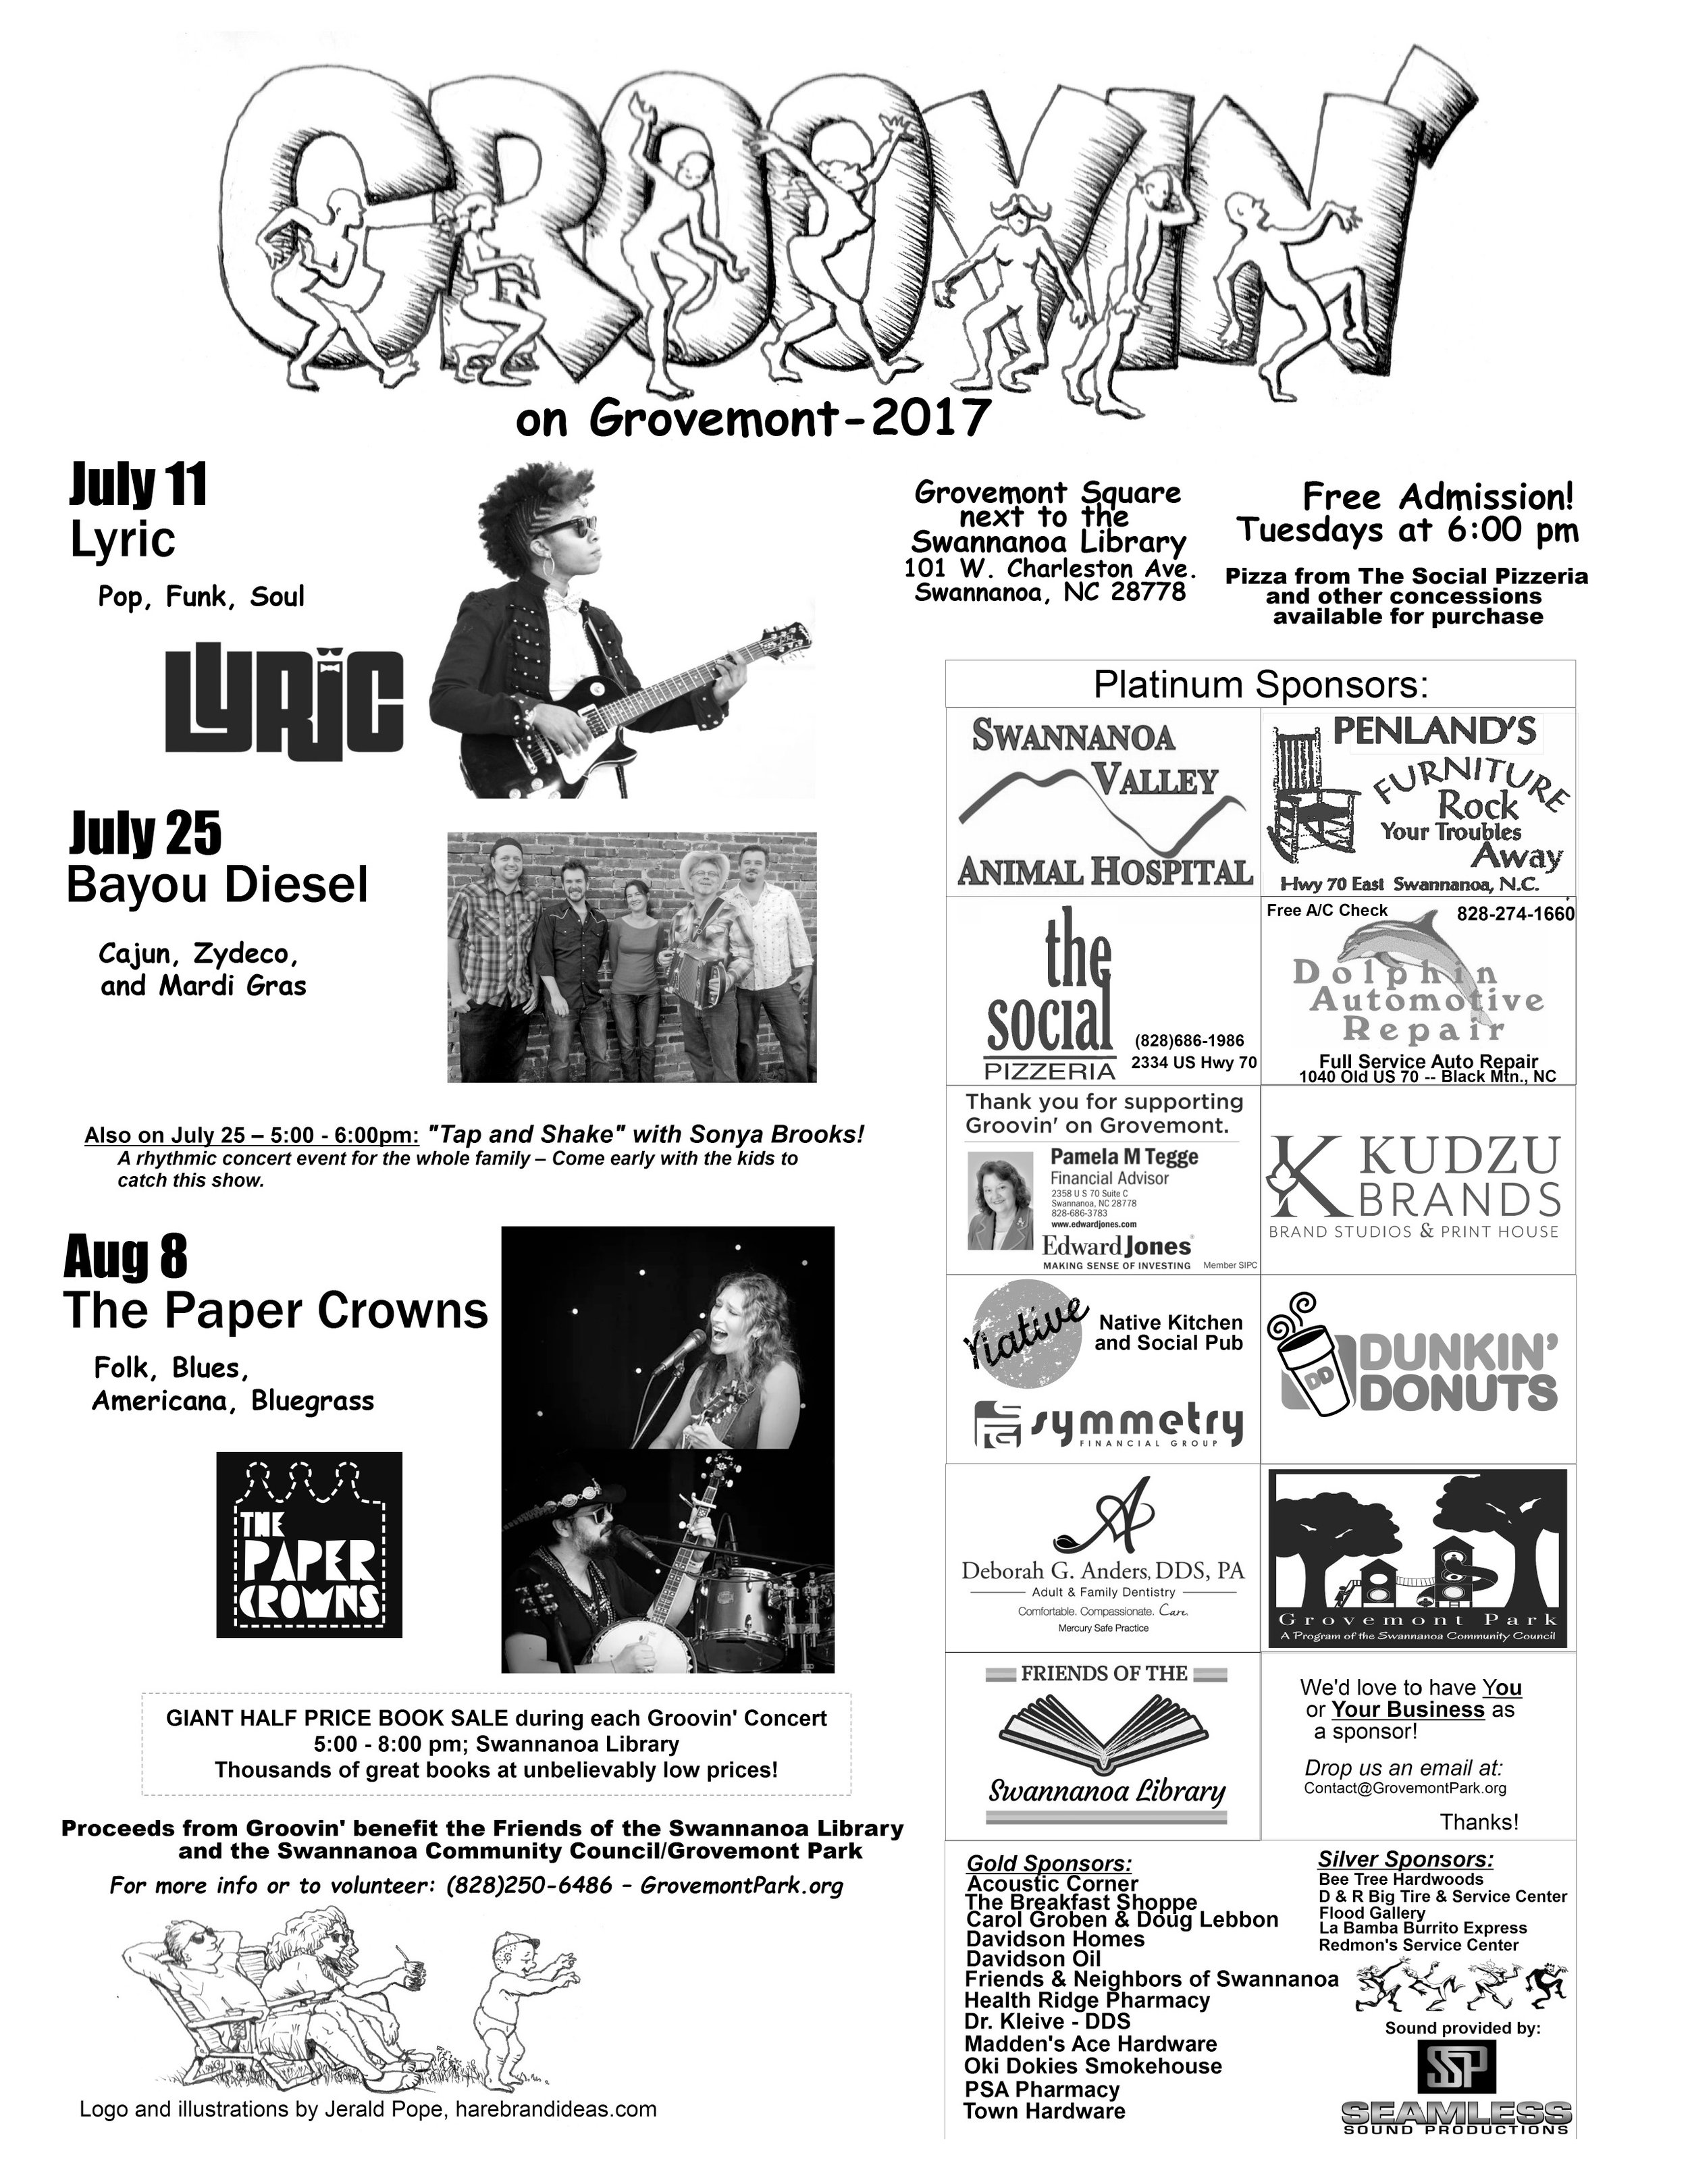 """- The 15th annual Groovin' on Grovemontsummer concert series returns to Grovemont Square (adjacent to the Swannanoa Library) on July 11, July 25 and August 8, at 6:00 p.m.Bring a blanket or lawn chair and come enjoy these family-friendly evenings of great music, brought to you entirely by local sponsors and community volunteers! The concert series is free and open to the public. Concessions, including pizza, hot dogs and home-baked goods, are available for purchase. Proceeds benefit the Friends of the Swannanoa Libraryand the Swannanoa Community Council.Here's the entertainment schedule:July 11:LYRIC– With an enlightened mixture of pop, soul and funk, LYRIC awakens an undiscovered spirit within their audiences, and consistently delights crowds across the region. Led by the poetic and soulful voice of lyricist and lead singer Leeda Jones, this group of multi-talented musicians has been described by many as the best band in Asheville.July 25:Bayou Diesel– This local Black Mountain band has been traveling the gig-highways of Western North Carolina since 2005. The band focuses on performing the powerful Cajun, Zydeco and Mardi Gras-style dance music of Louisiana. Featuring the accordion, rubboard, rhythm section and occasional French lyrics, Bayou Diesel cooks up some tasty jam-balaya. Put on your dancing shoes! (Note: """"Tap and Shake"""" with Sonya Brooks – a rhythmic concert event for the whole family -begins at 5PM on July 25. Come early with the kids to catch this show.)August 8:The Paper Crowns– The Paper Crowns are the multi-instrument, genre-crossing power-duo of Spiro and Nicole Nicolopoulos. Earning their reputation as the genuine article and as a band on the cutting edge of modern roots music, the Paper Crowns have a musical chemistry that is a gumbo of Appalachian folk and bluegrass, Dixieland melodies, delta blues, acid rock, murder ballads, outlaw country and Southern Gospel that they cook up into a sound all their own.Bonus feature: GIANT HALF-PRICE BOOK SALE """